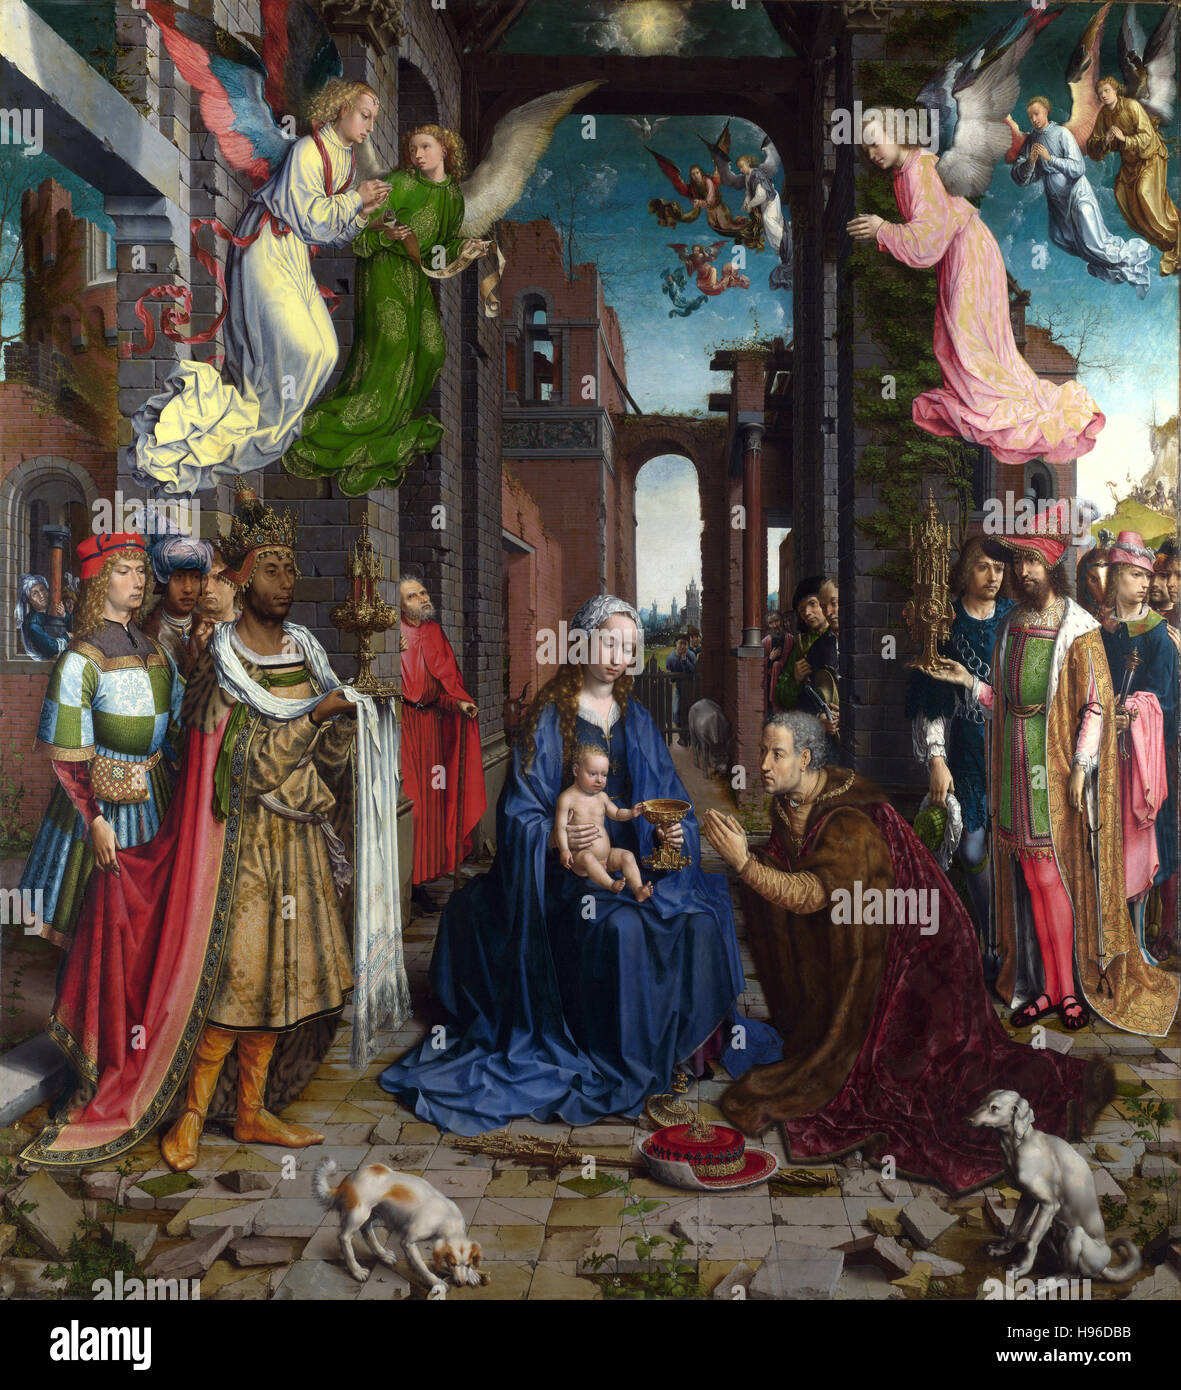 Jan Gossaert -  The Adoration of the Kings  - 1515 - Stock Image